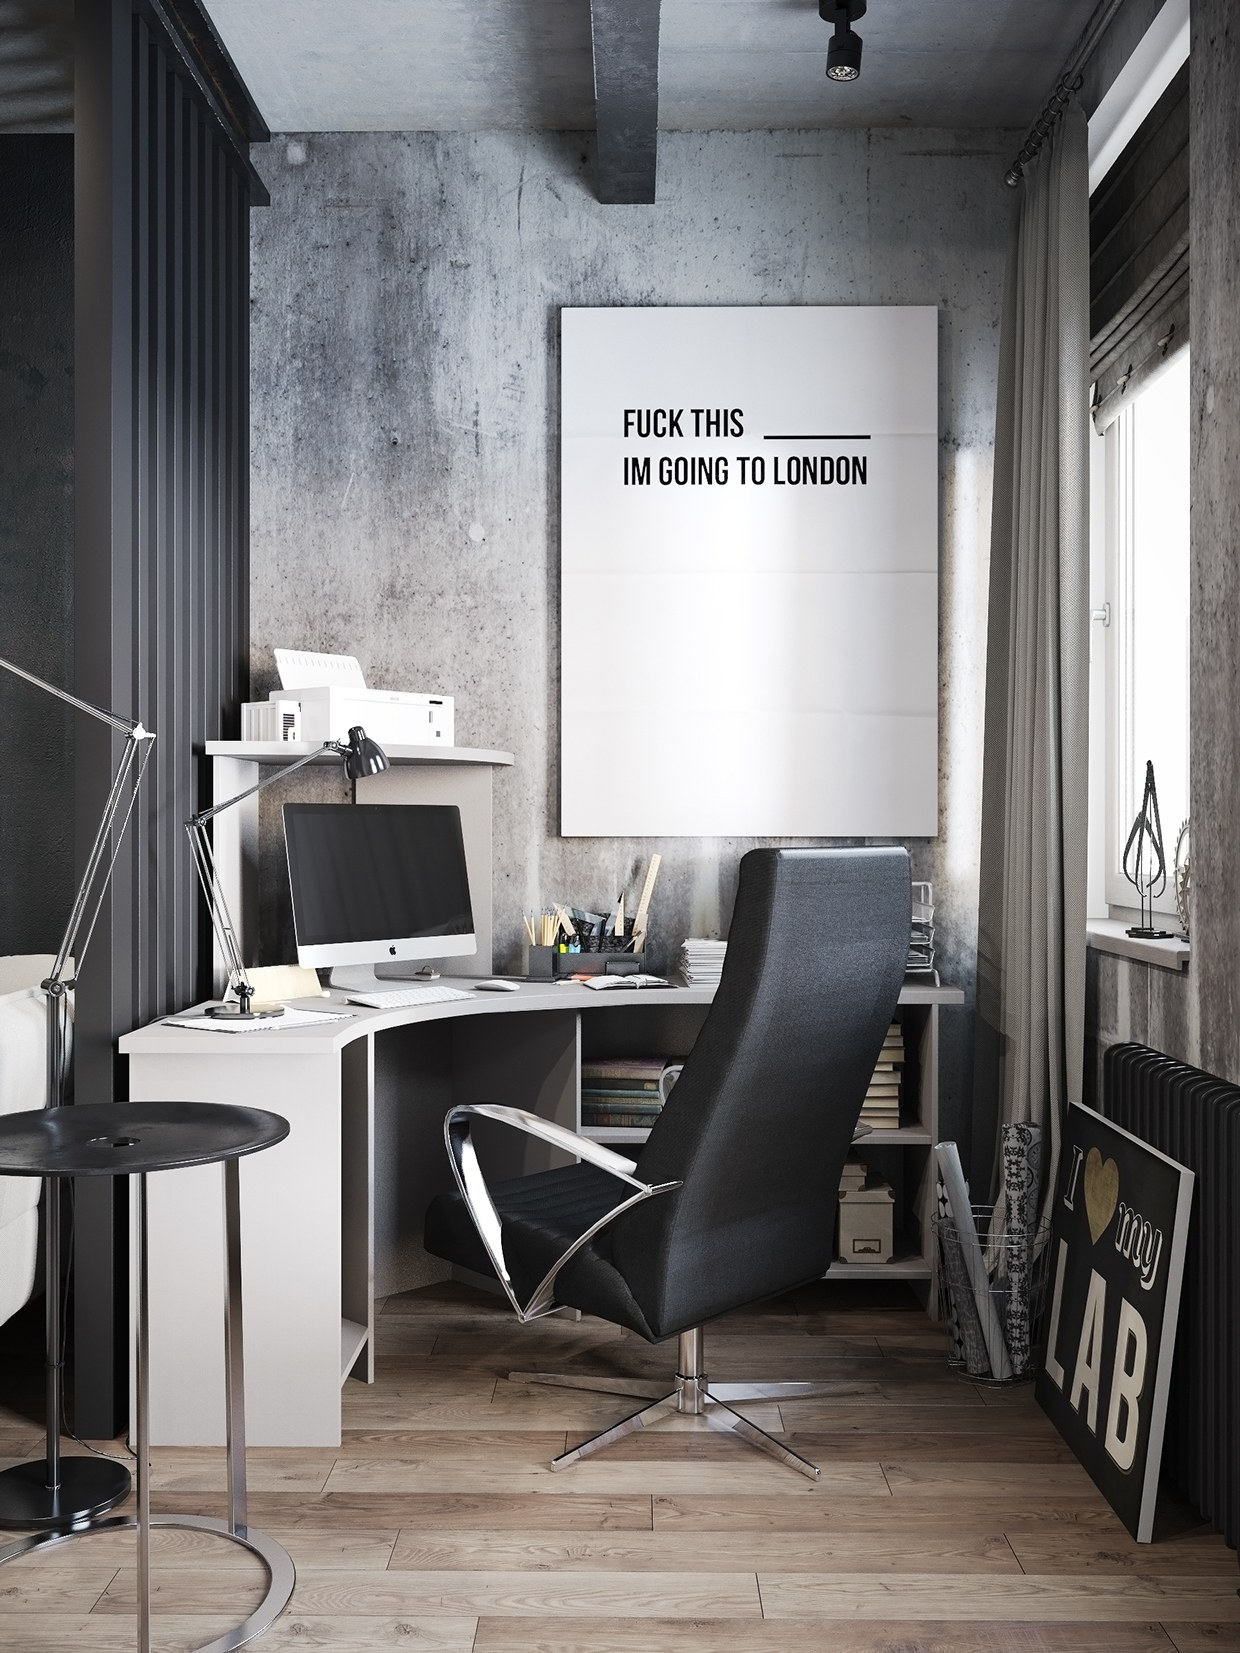 Slick home office interior design ideas Home office interior design ideas